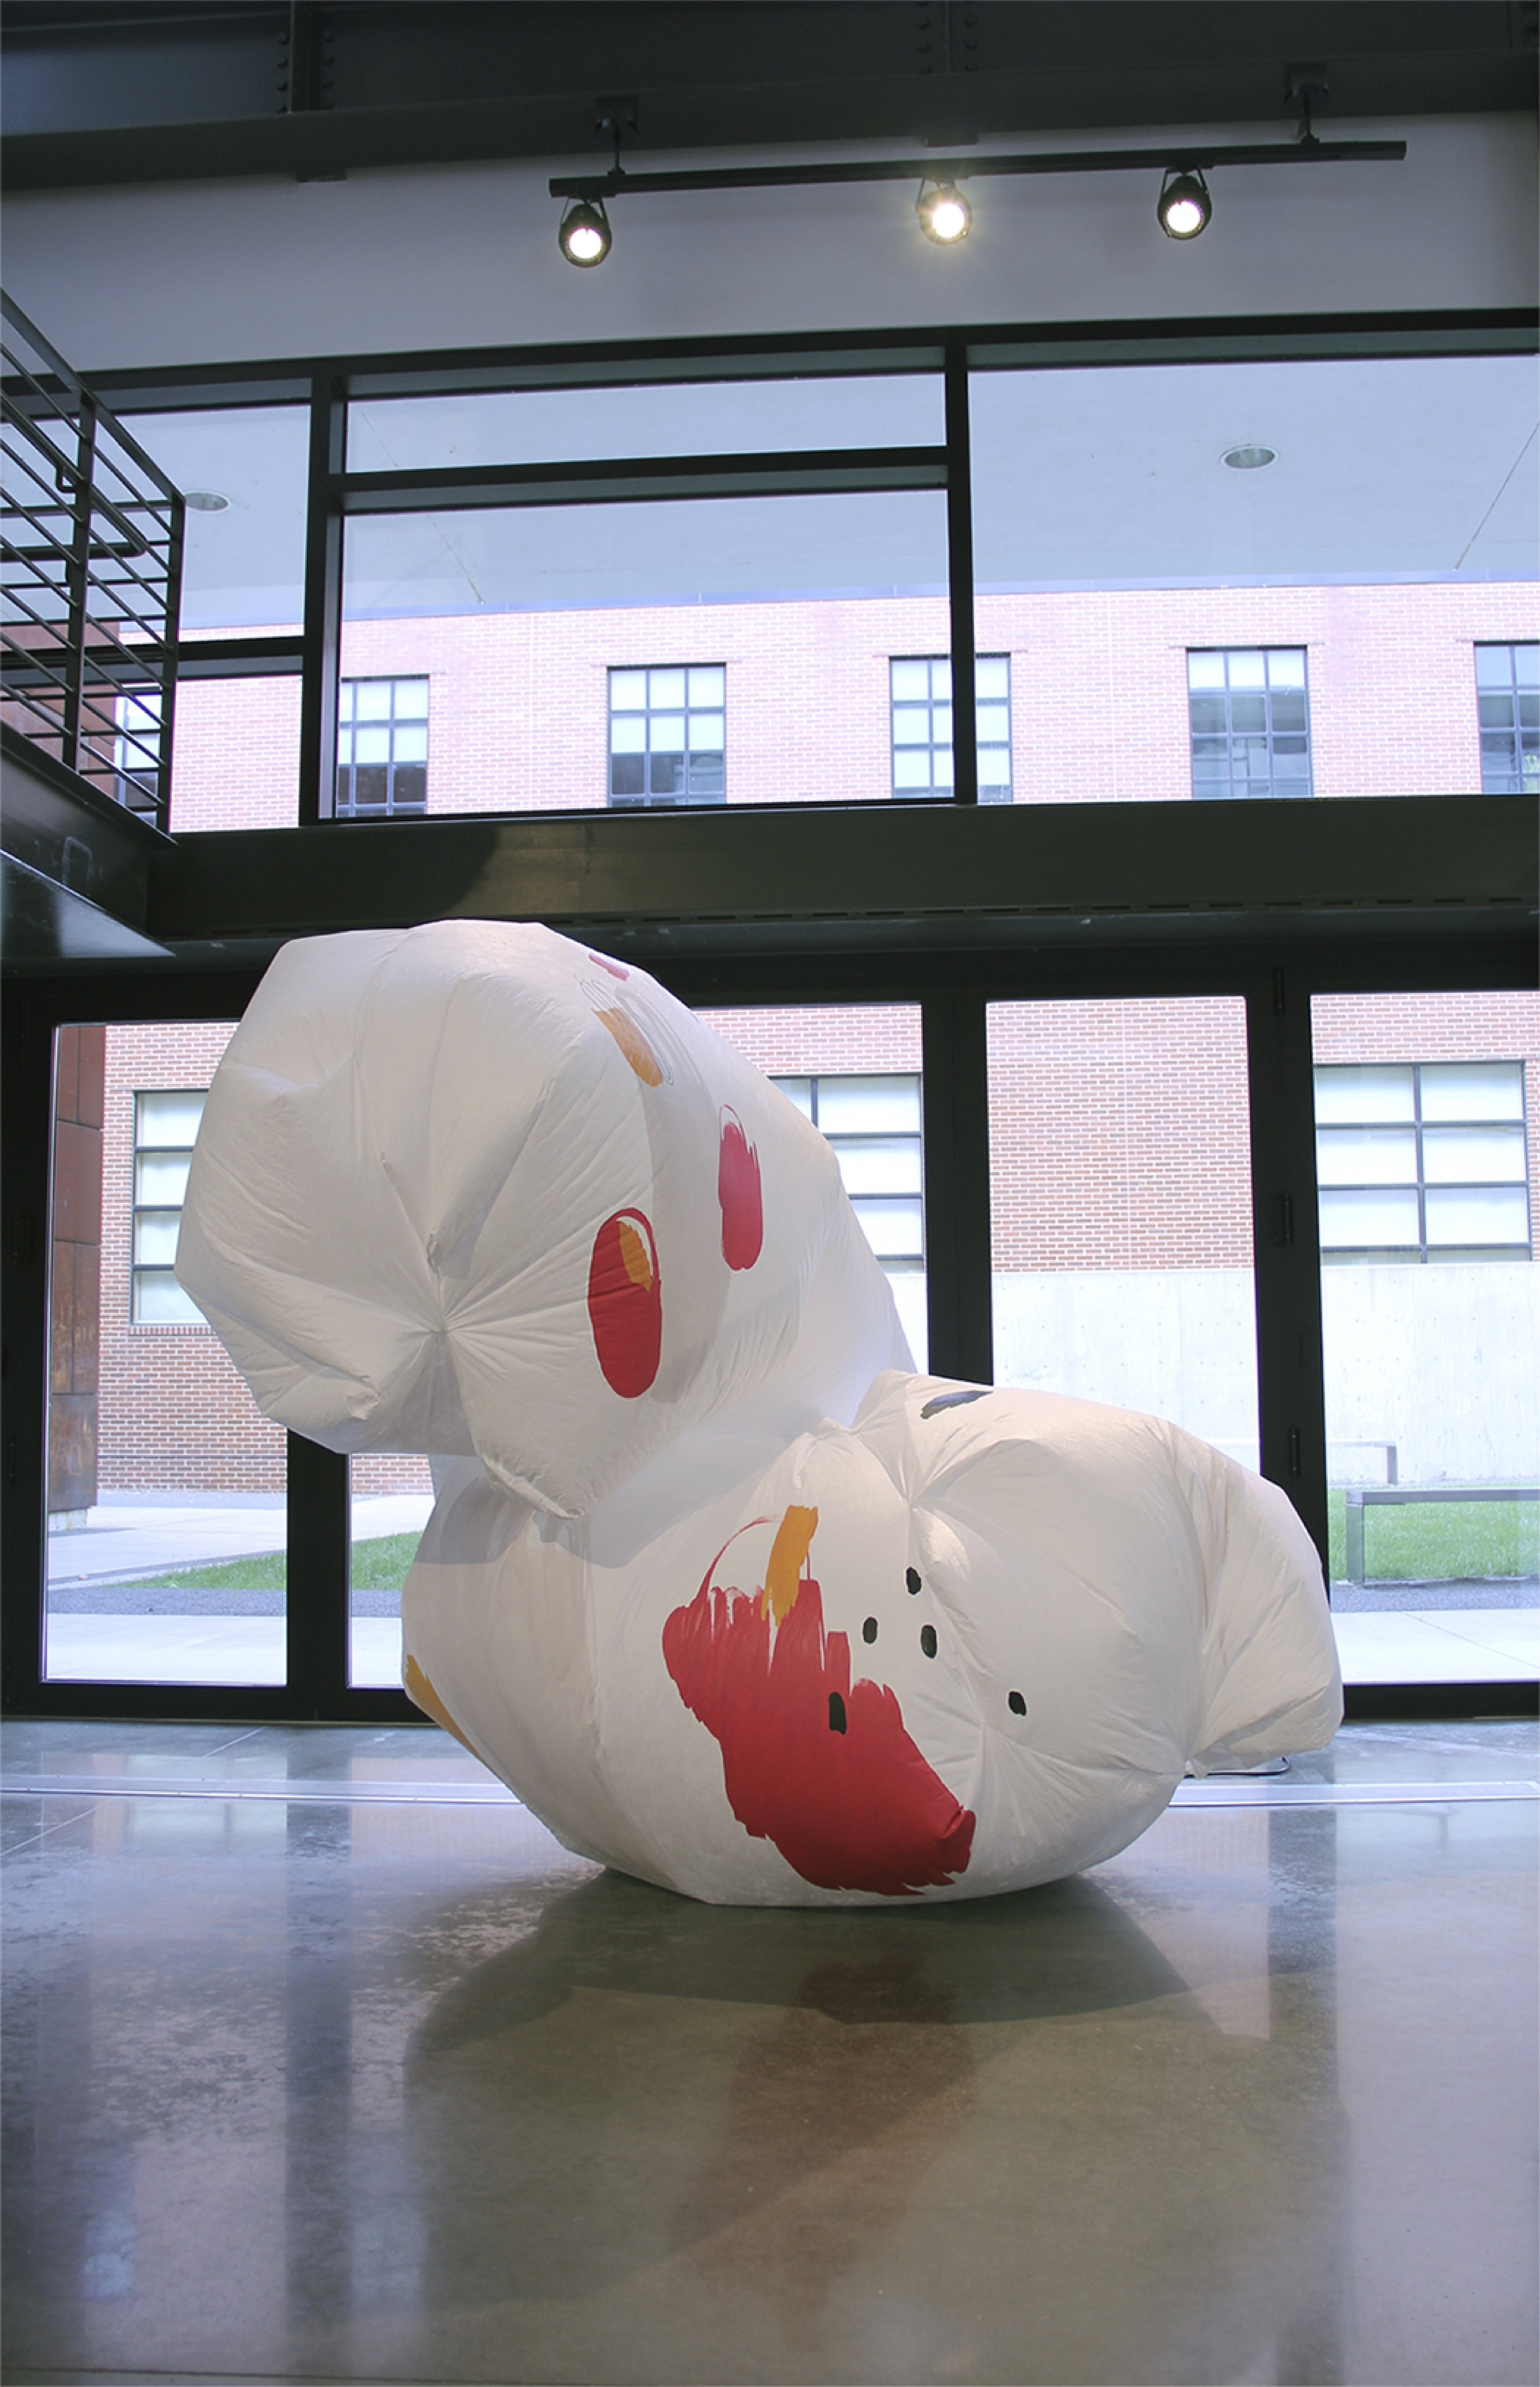 An abstract inflatable sculpture on display in an art gallery